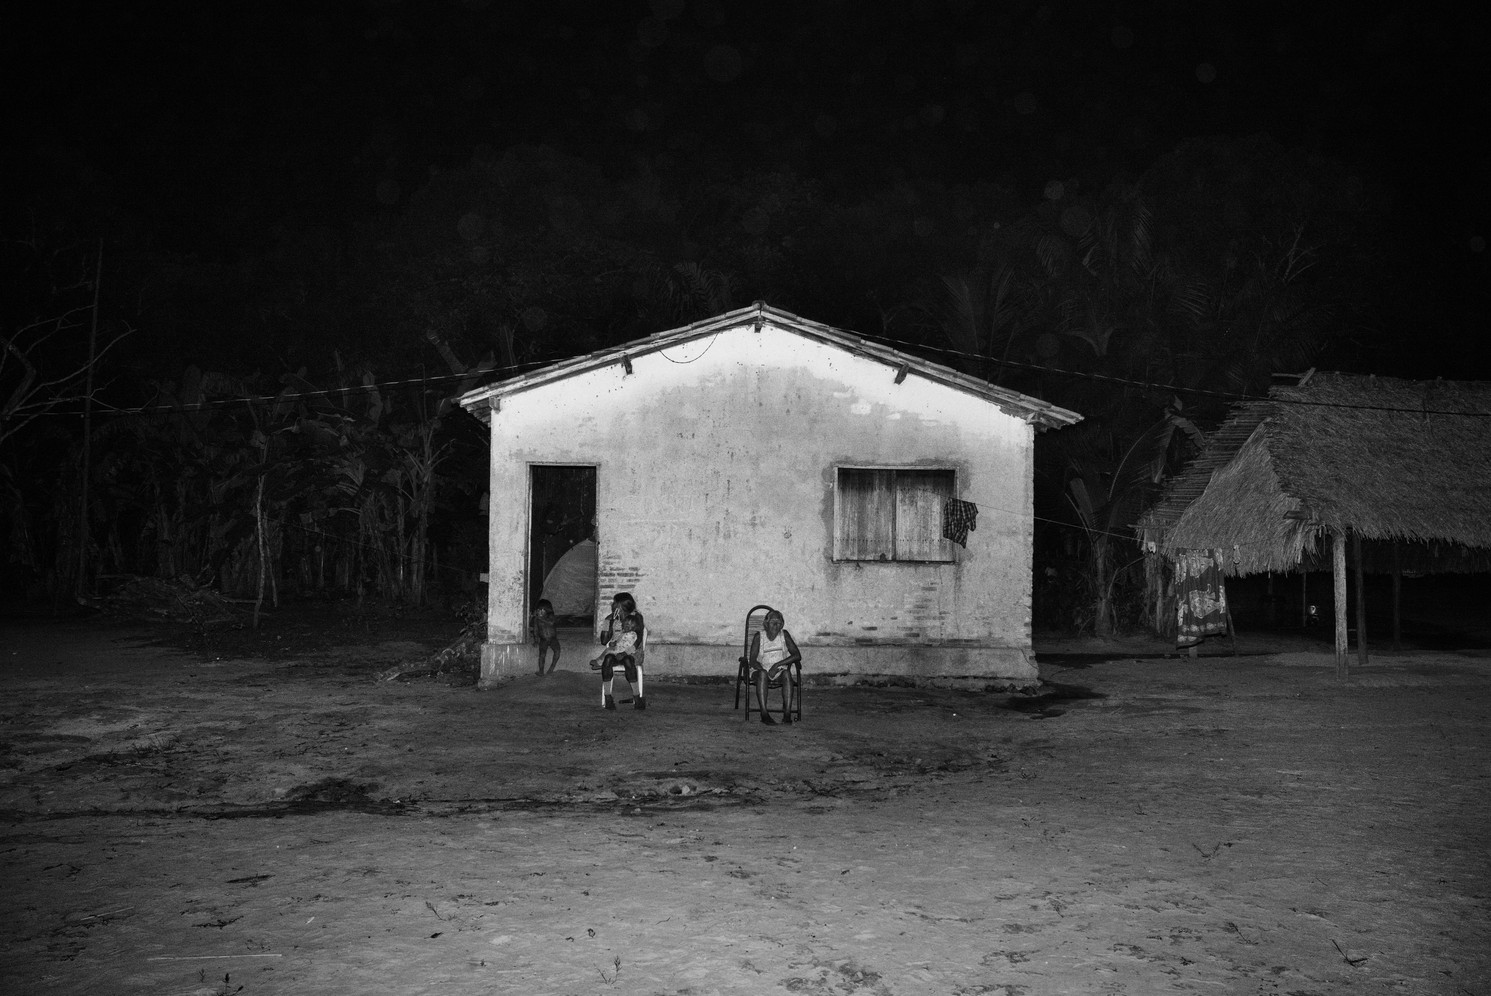 House built in Kubenkrãnken village by illegal loggers who invaded the Kayapo indigenous land in southern Pará state. The Kayapo have only been in contact with non-indigenous society since the 1960s. Their land serves as a crucial barrier to deforestation advancing from the south.